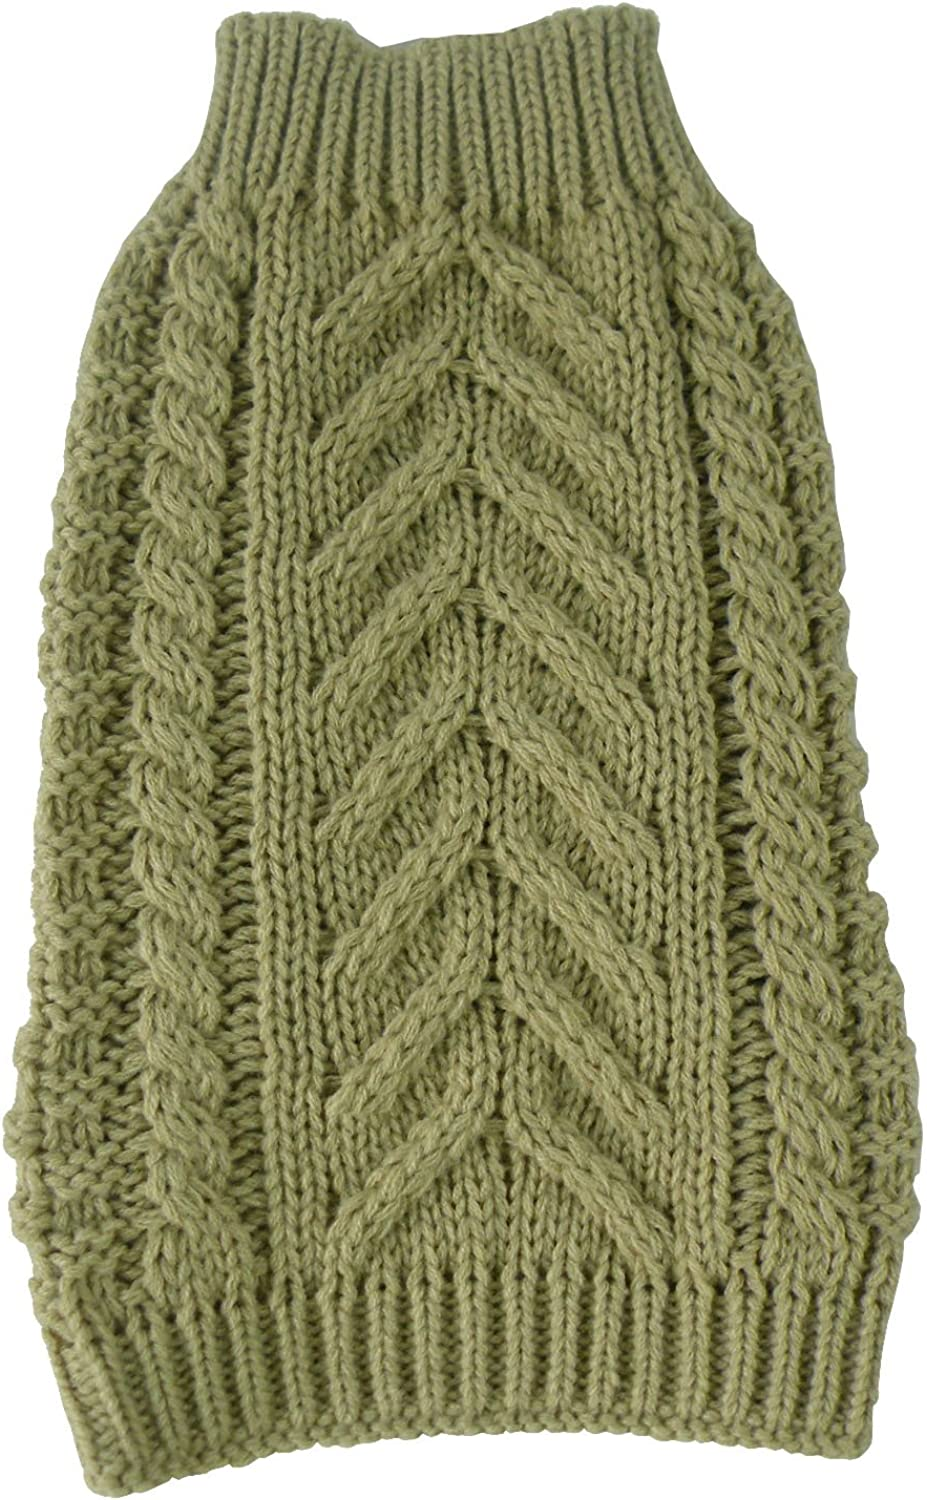 PET LIFE 'SwivelSwirl' Heavy Cable Knitted Fashion Designer Pet Dog Sweater, XSmall, Tan Brown